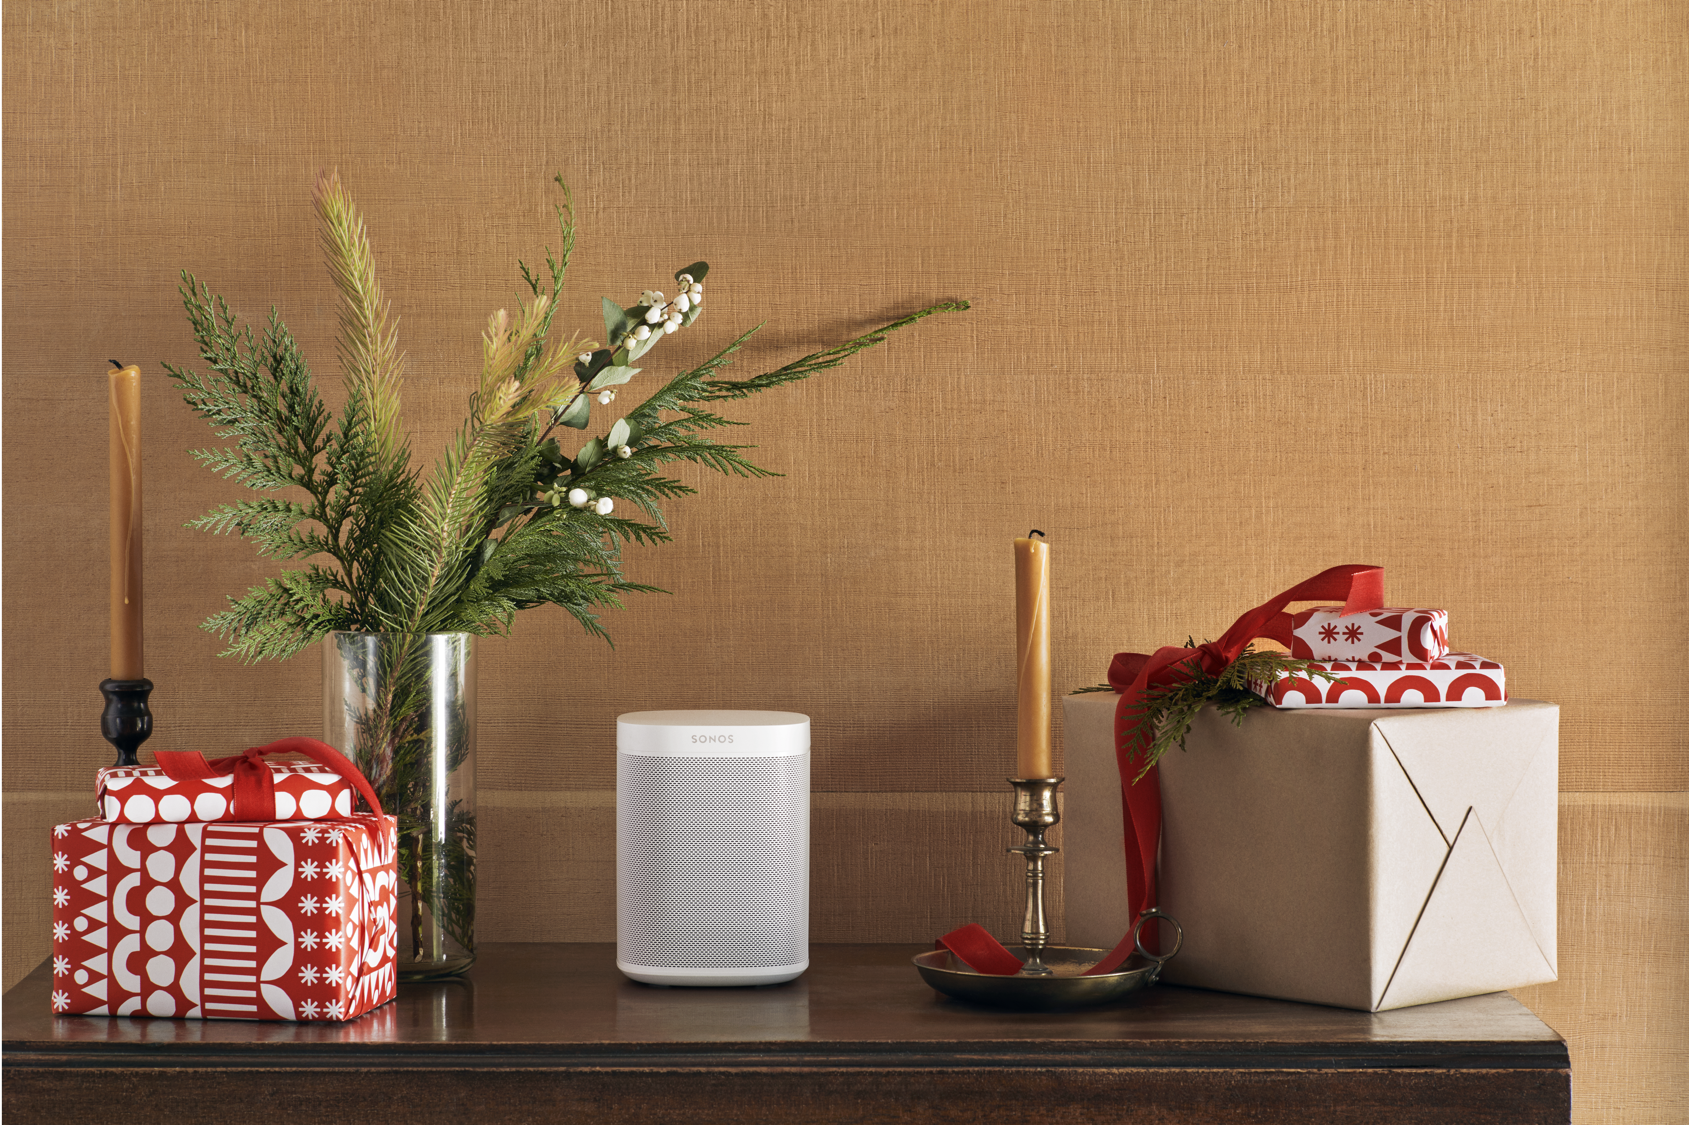 The Verge Pokemon X Electrical Plant Sonos Black Friday Deals Feature One And Beam Speakers